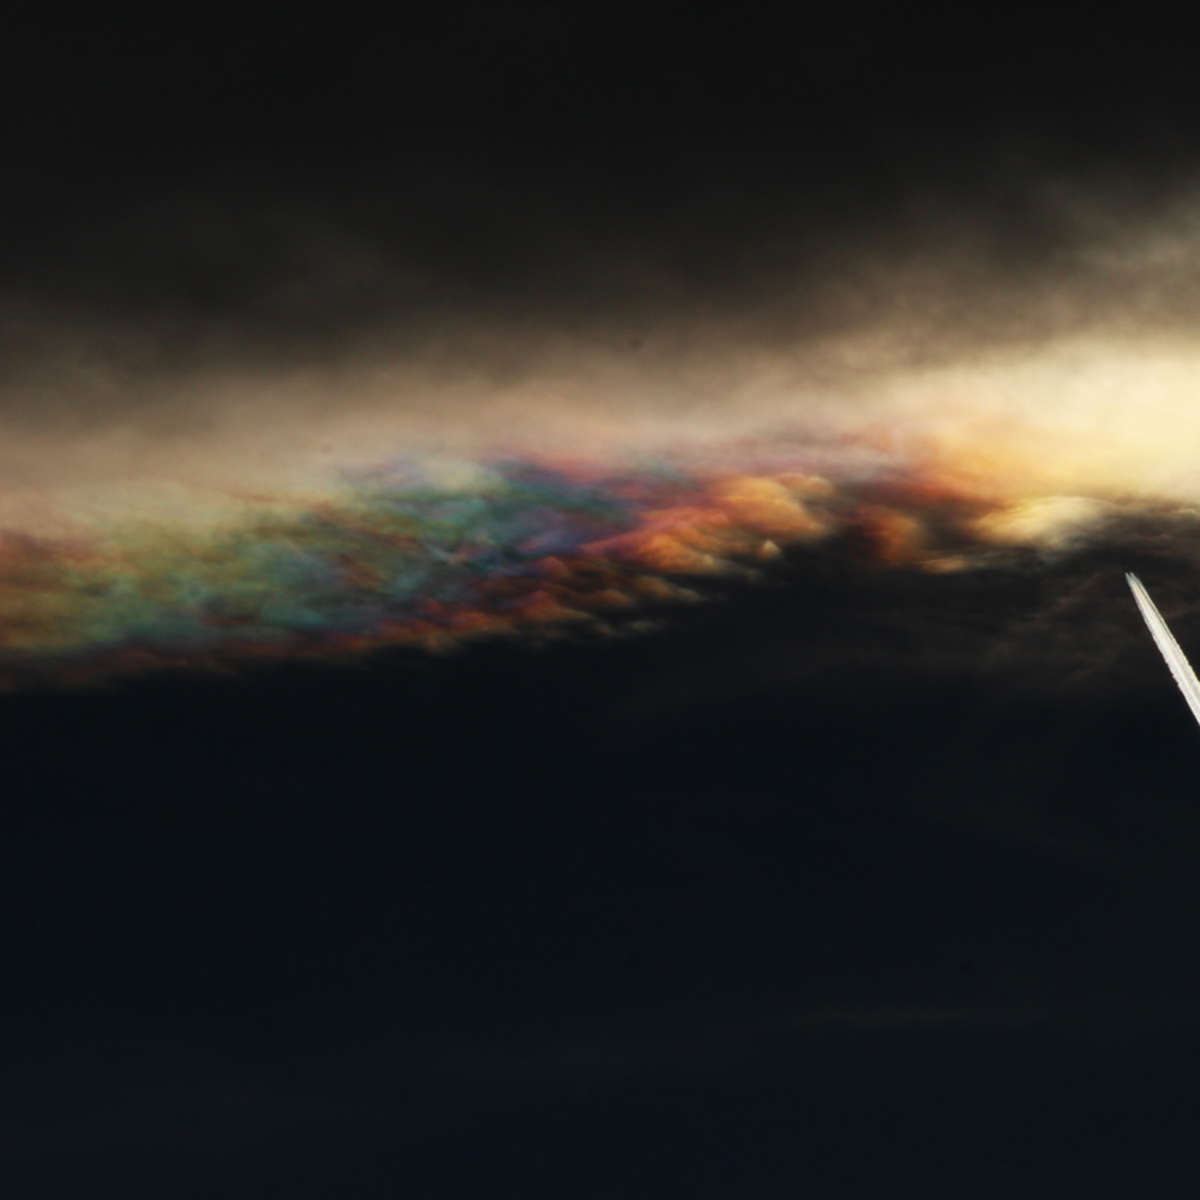 Contrast-enhanced view of iridescent lenticular clouds over Boulder, Colorado. Note the airplane. Credit: Phil Plait